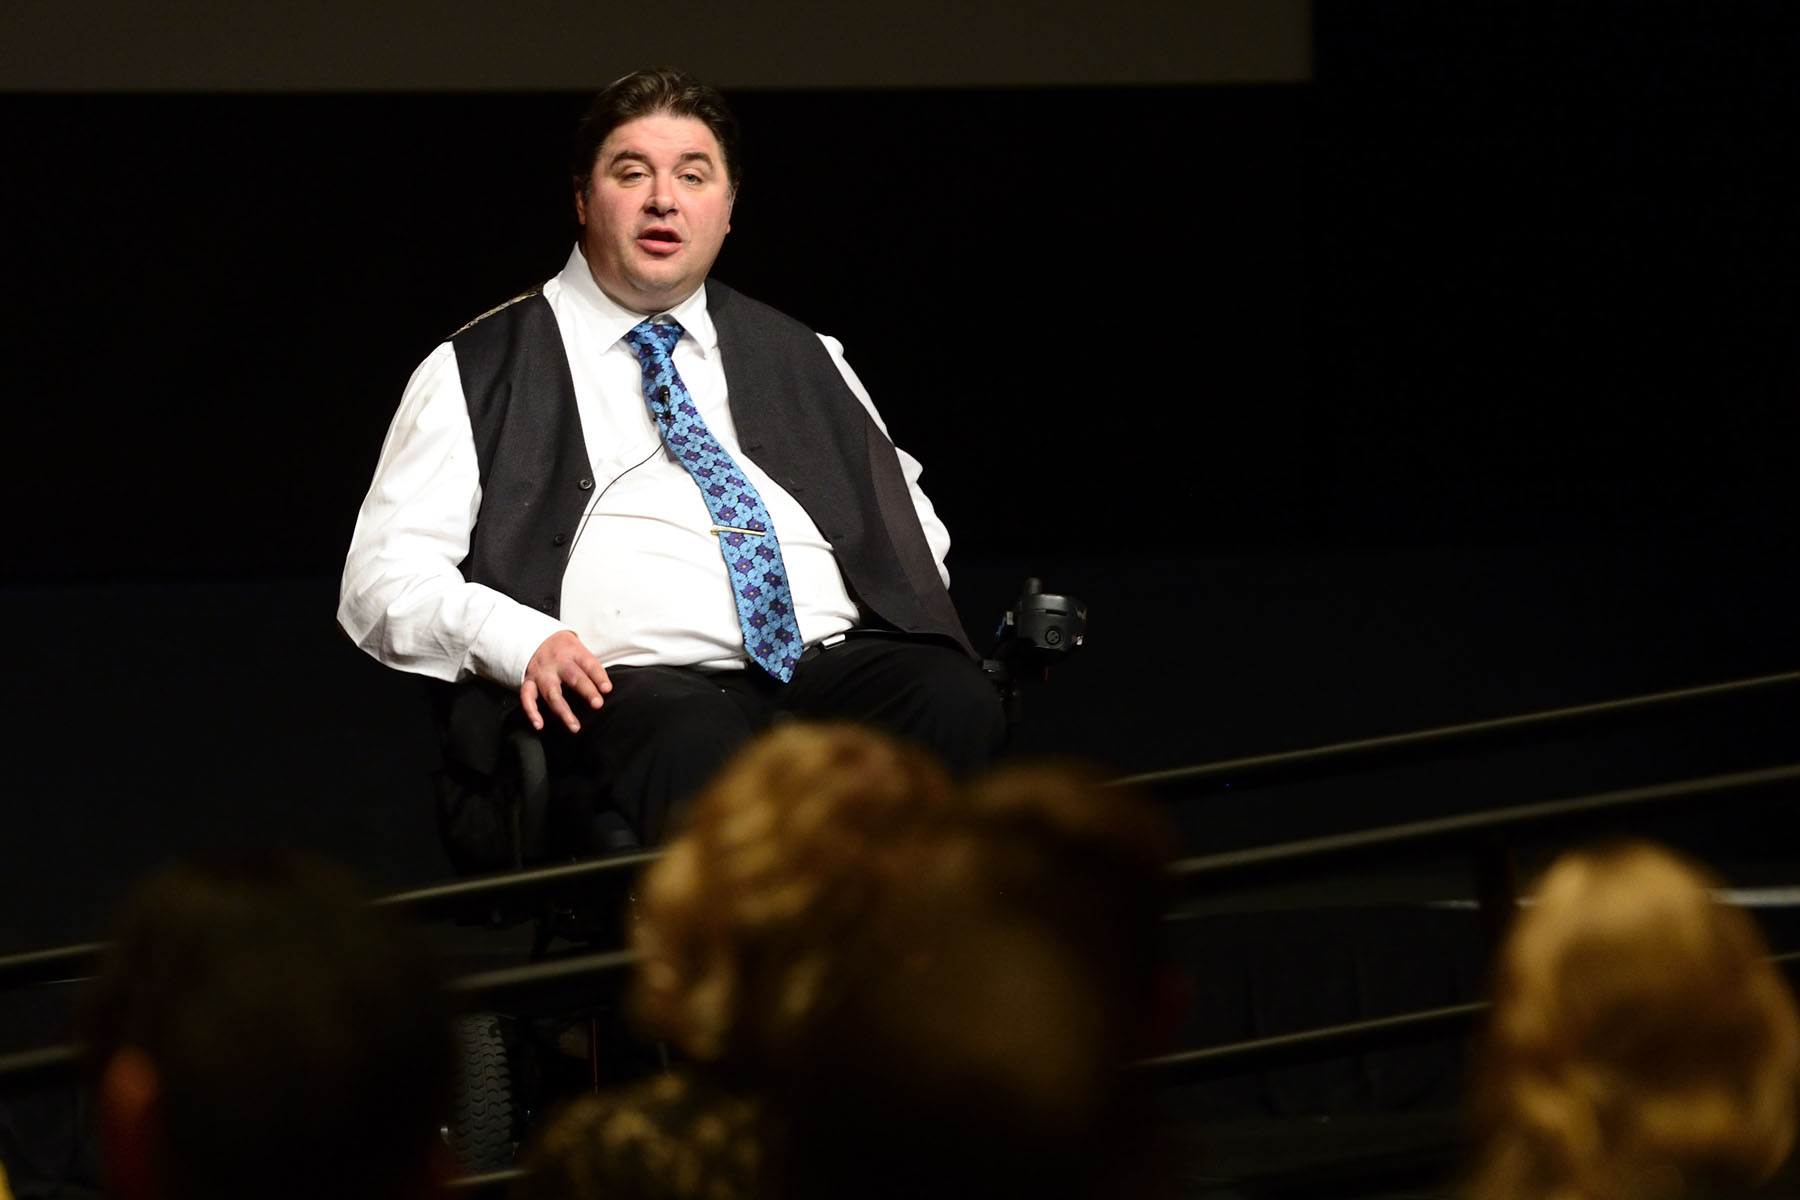 The Honourable Kent Hehr, Minister of Veterans Affairs Canada and Associate Minister of National Defence, delivered remarks.